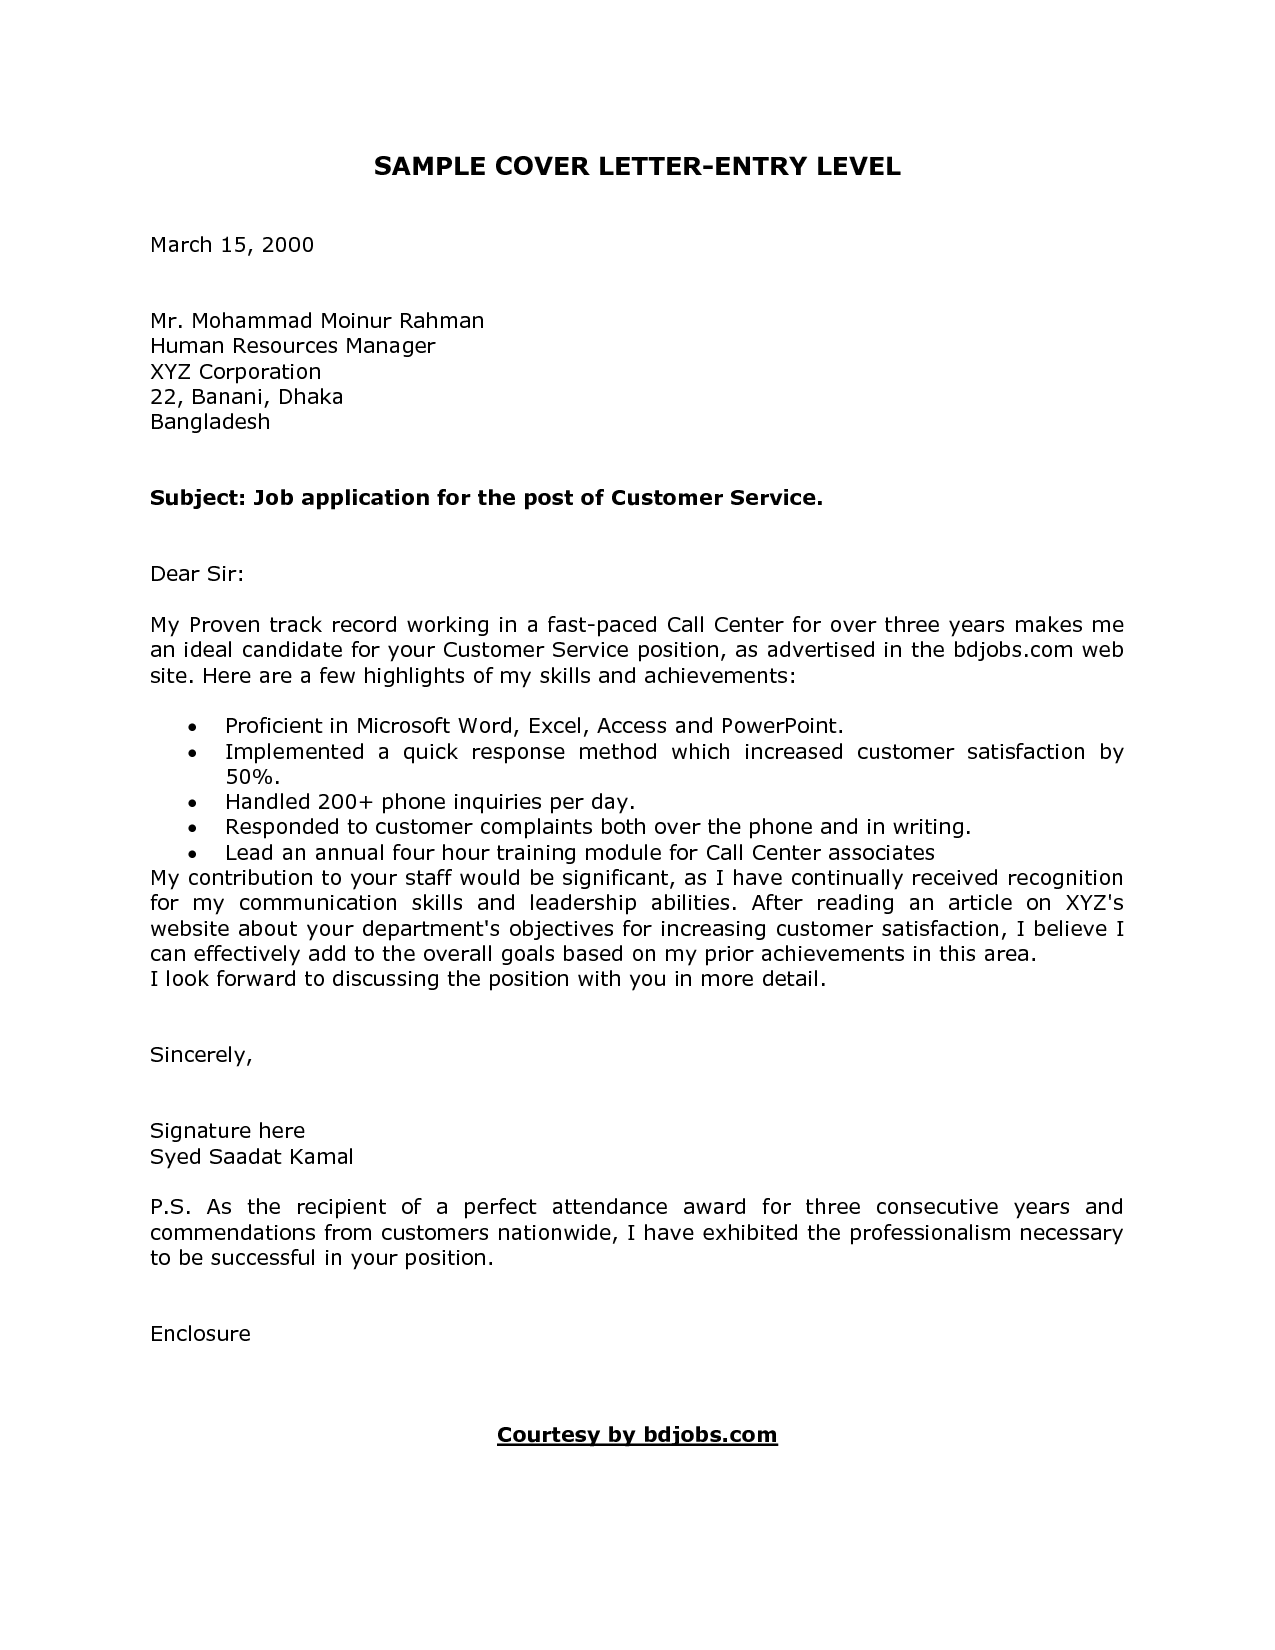 40 Best Cover Letter Examples Images On Pinterest. Cover Letters ...